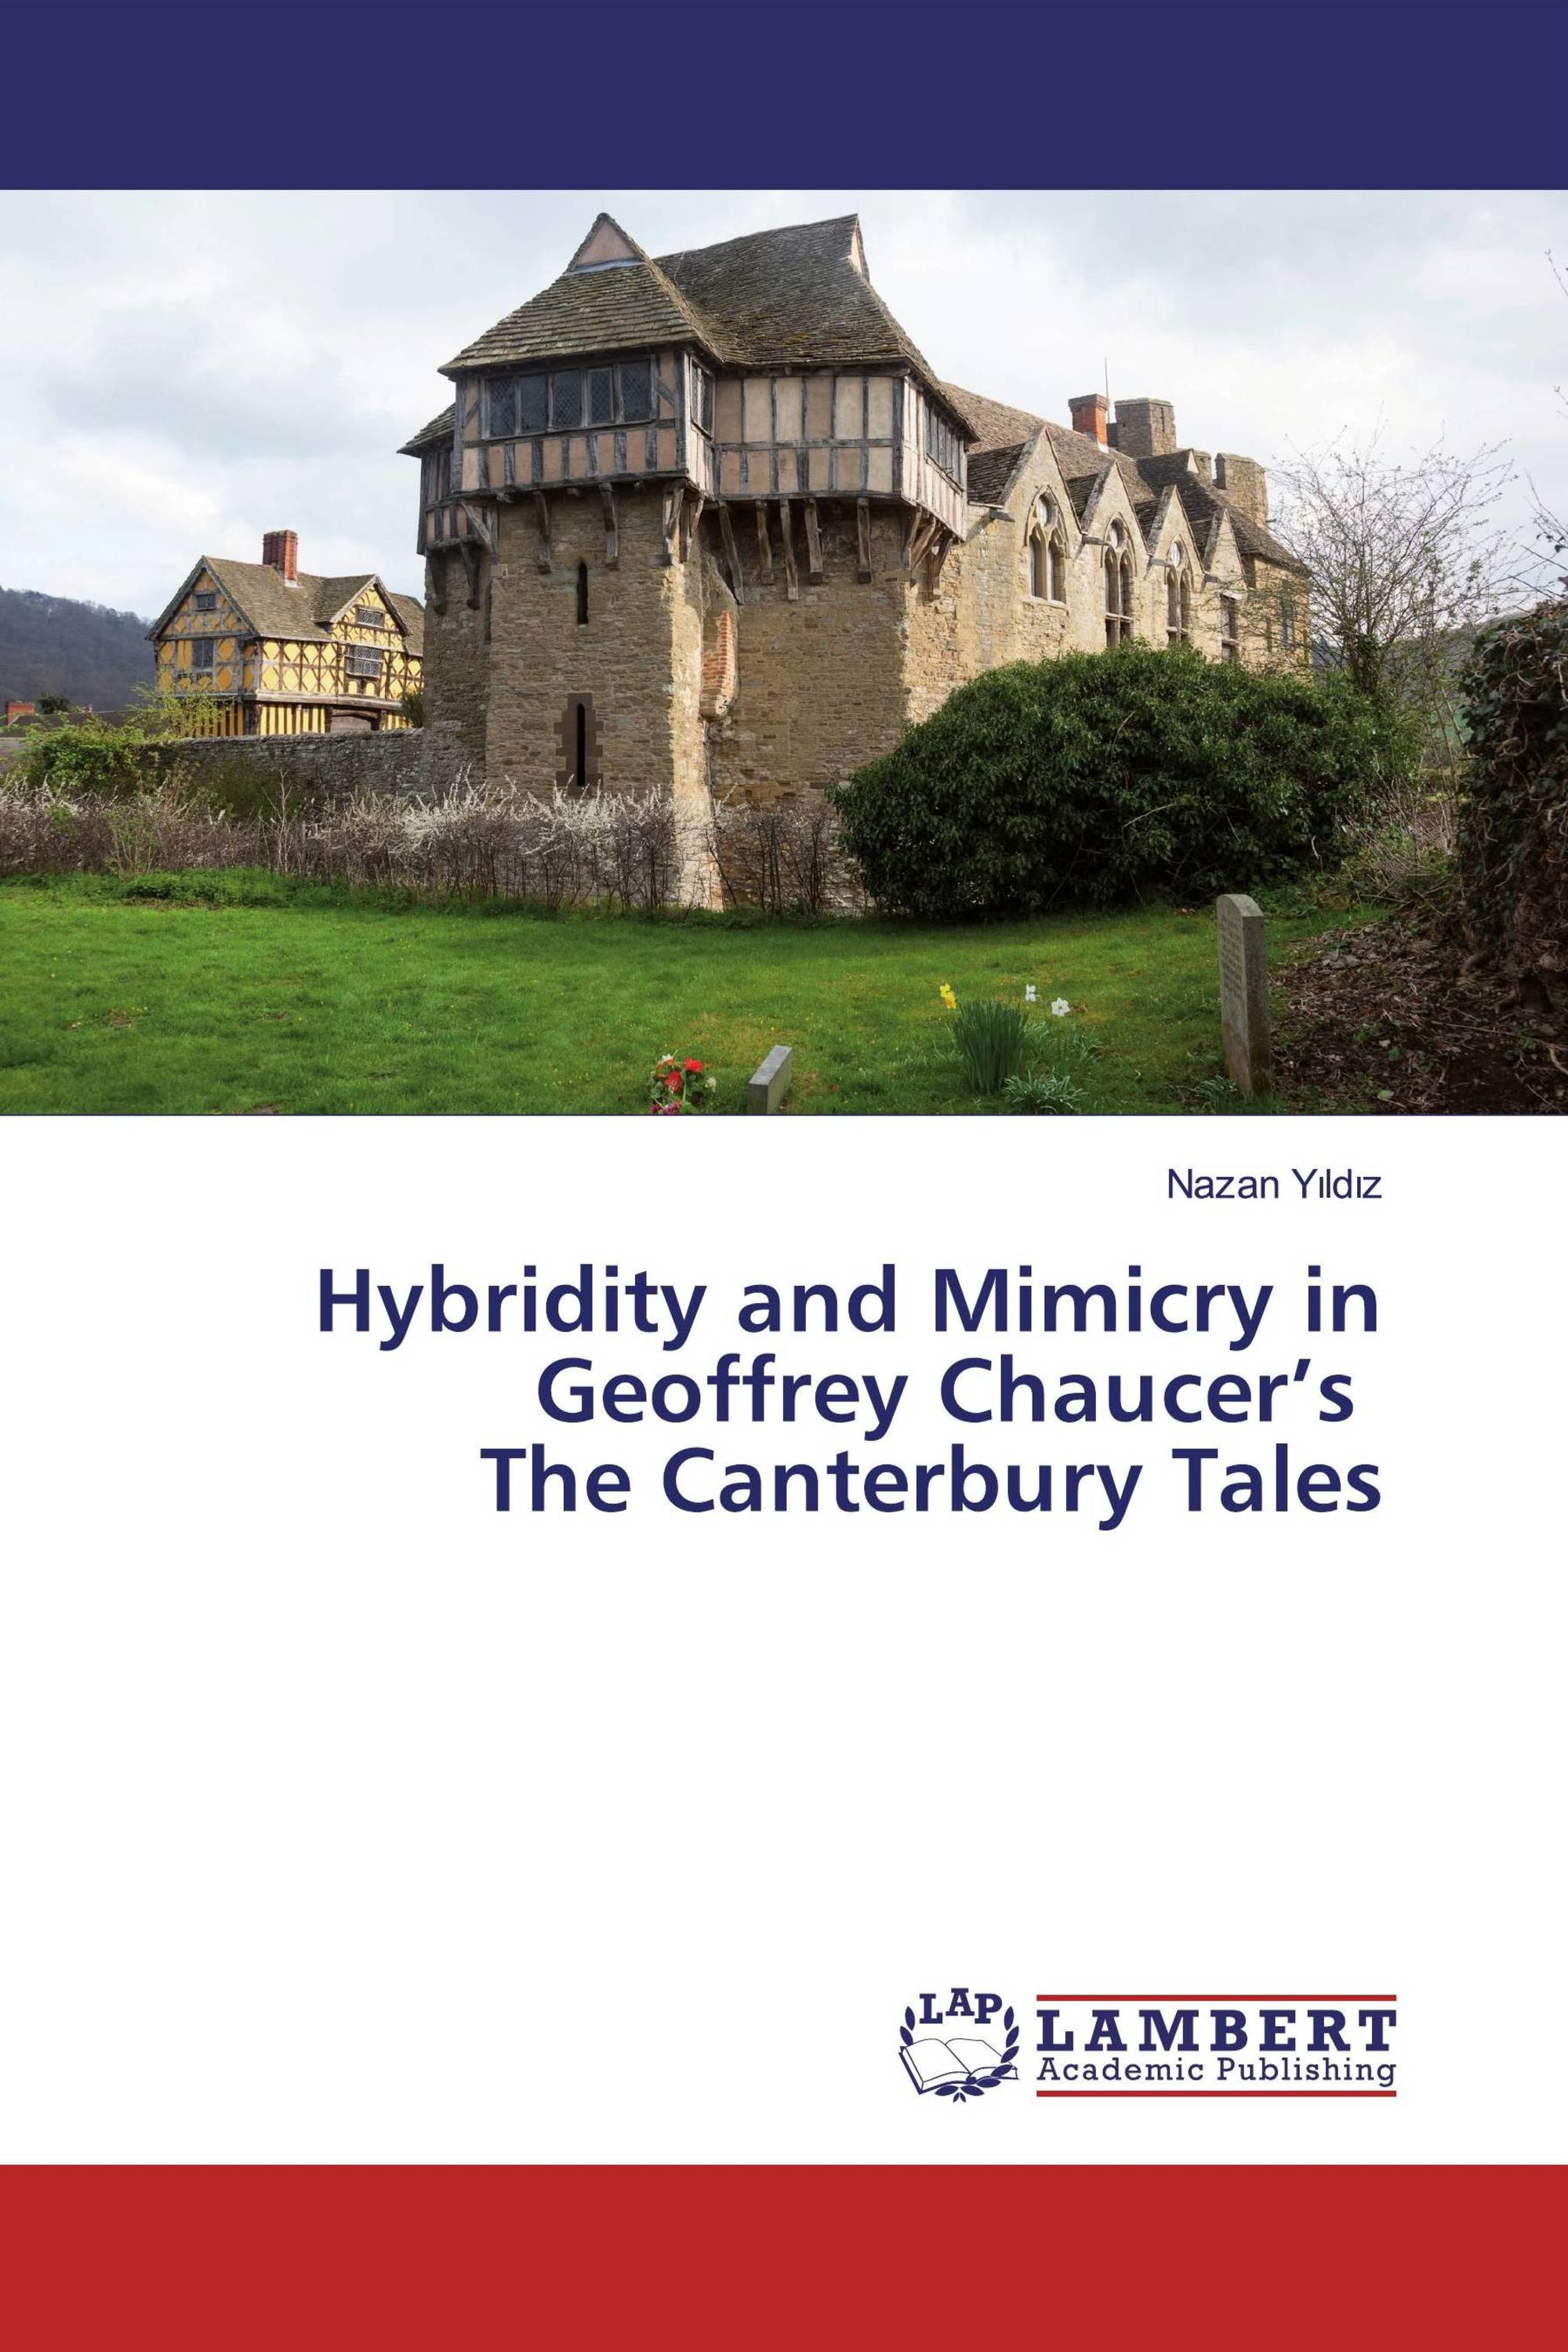 Hybridity and Mimicry in Geoffrey Chaucer's The Canterbury